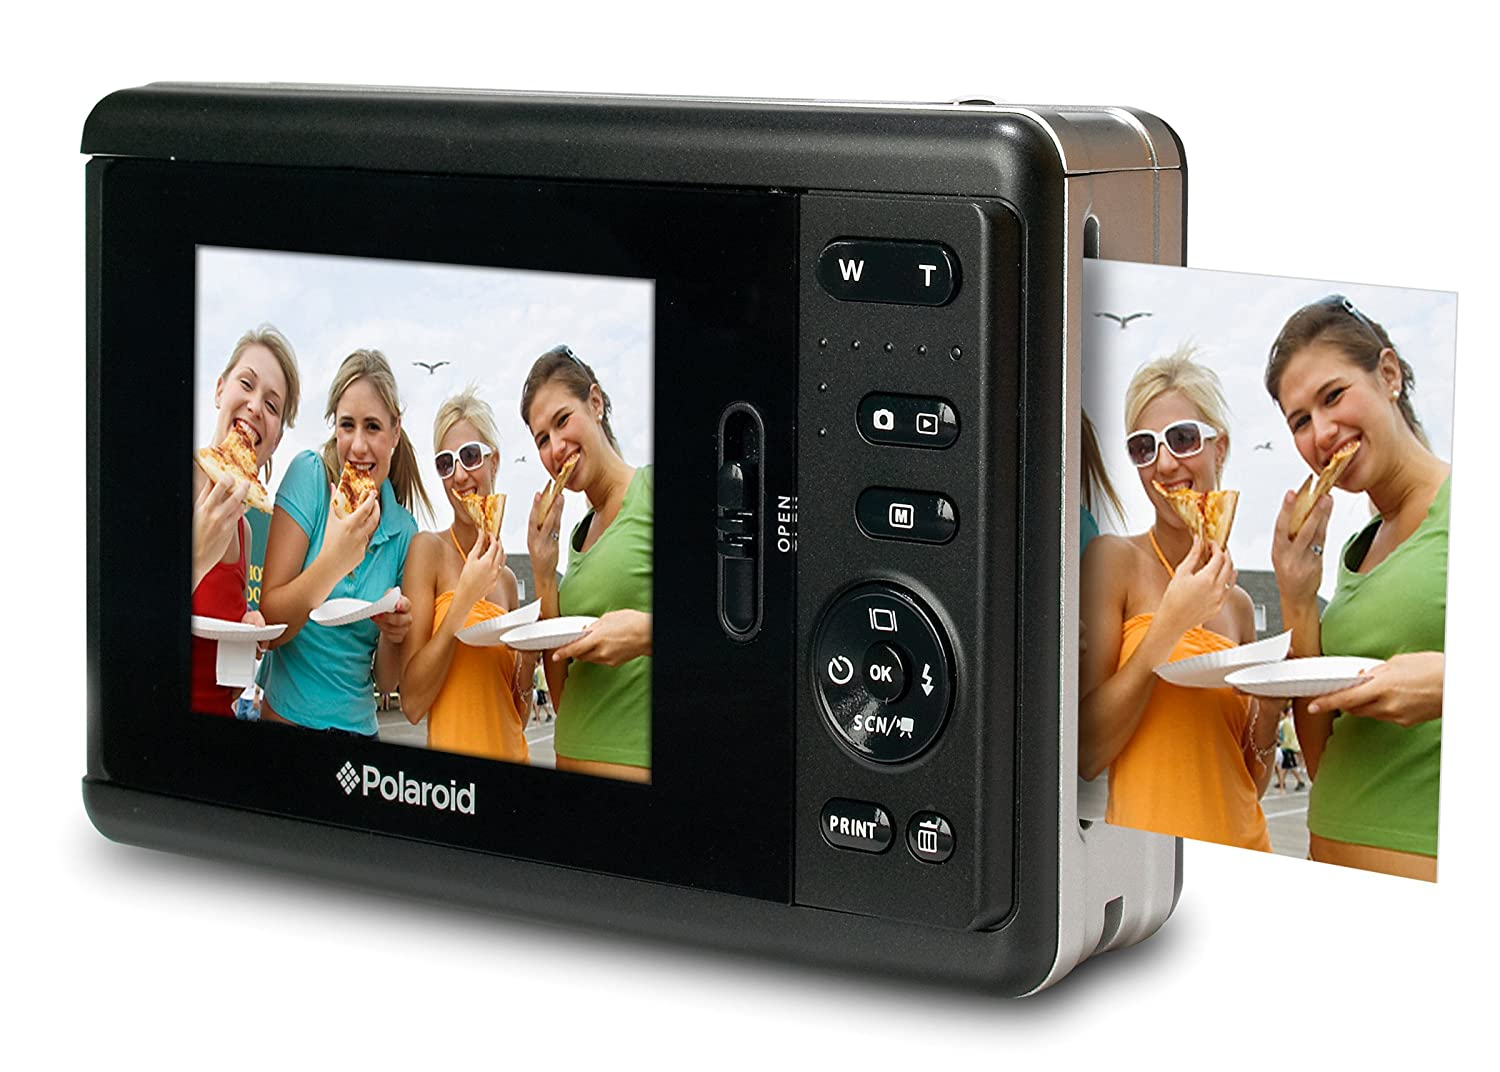 Amazon.com : Polaroid Instant Digital Camera with ZINK Zero Ink ...